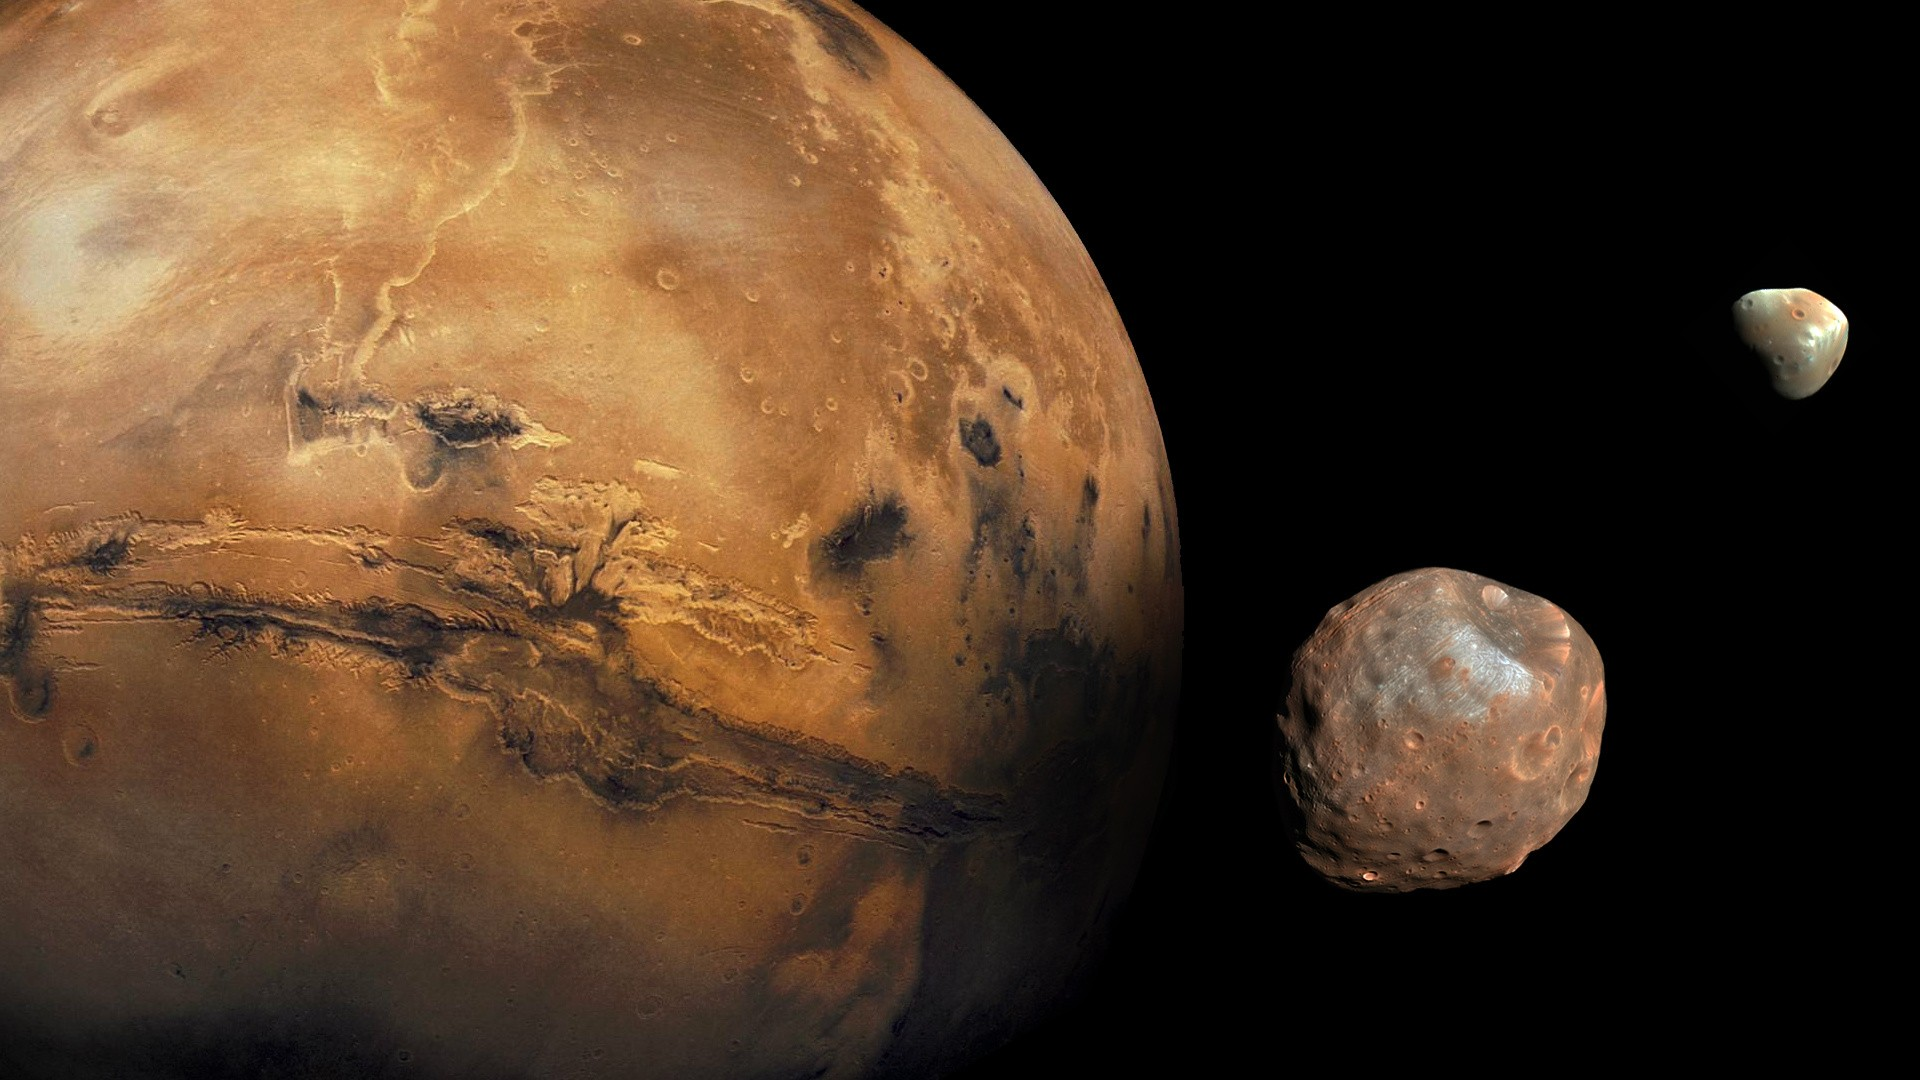 Mars' two moons, Phobos and Deimos, were likely formed from chunks blasted from the red planet rather than from asteroids trapped in the planet's gravitational pull, a new study suggests. (Photo: NASA/JPL-Caltech/Malin Space Science Systems/Texas A&M Univ.)